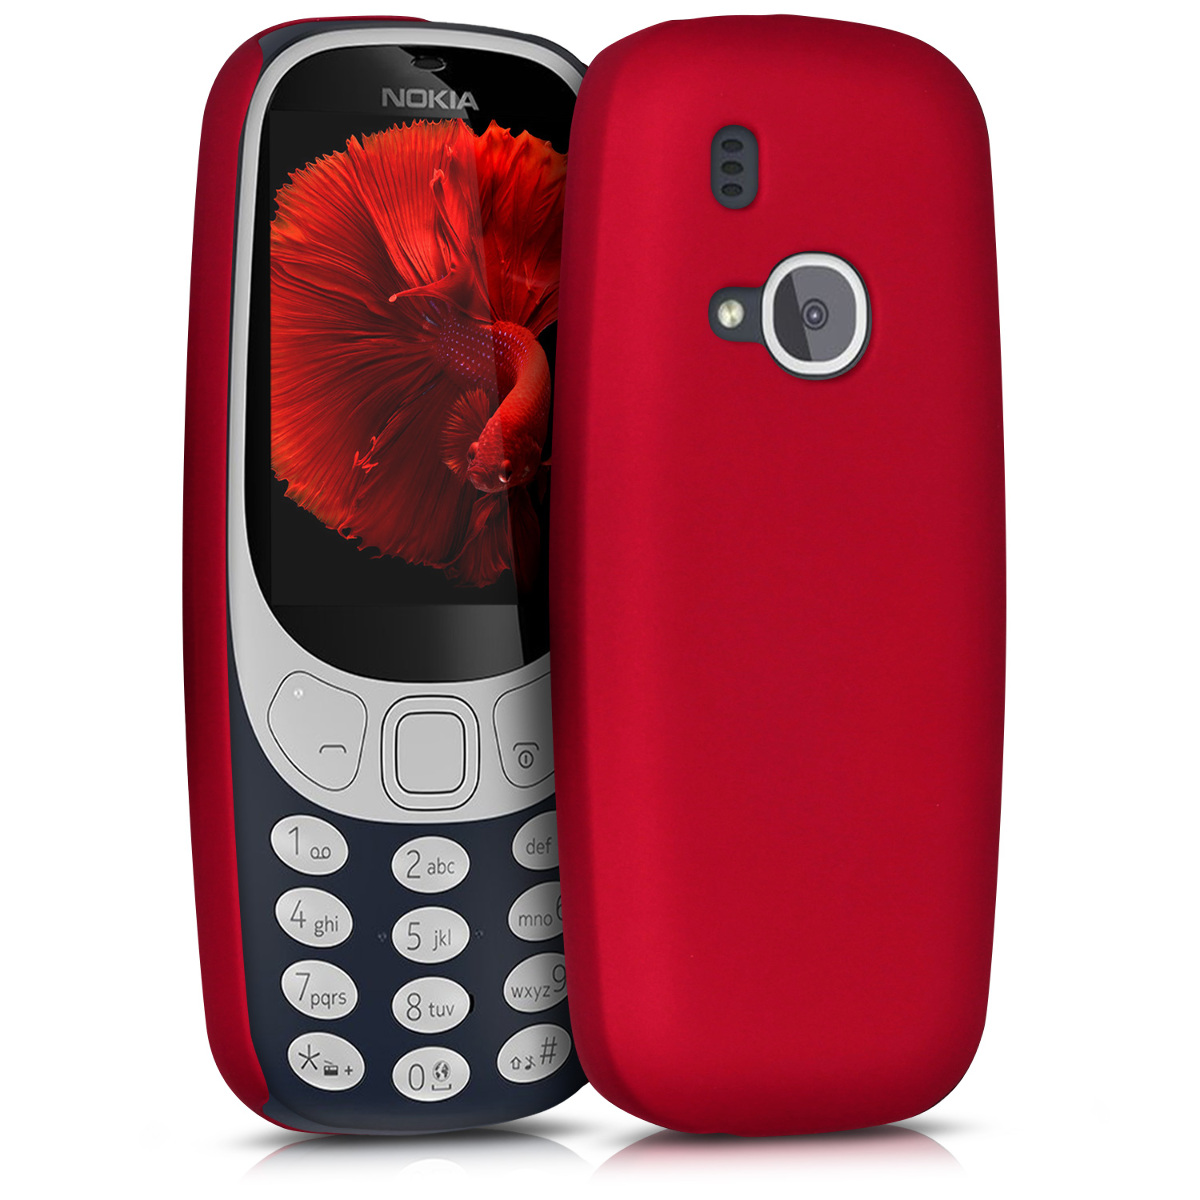 KW Slim Anti-Slip Cover - Σκληρή Θήκη Καουτσούκ Nokia 3310 (2017) - Metallic Dark Red (43532.20)